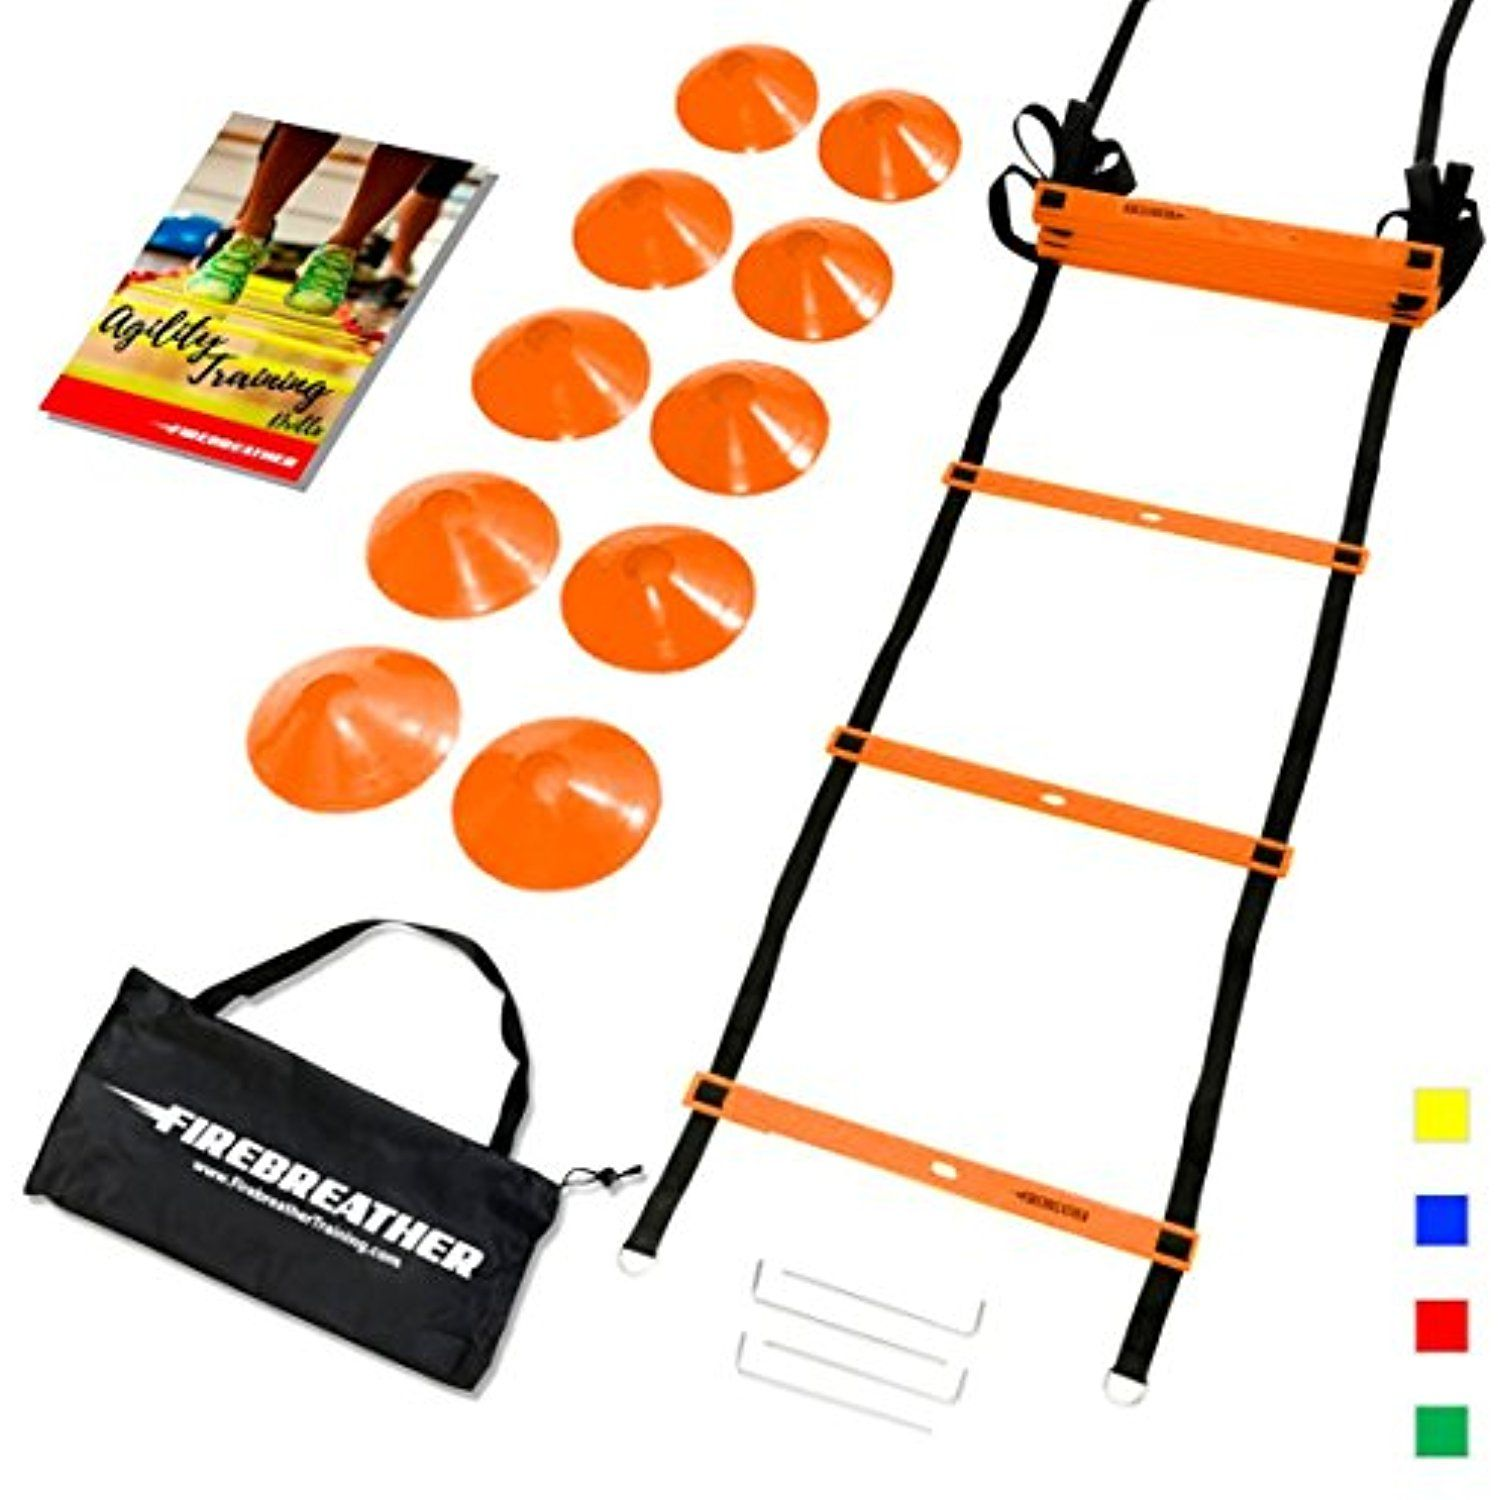 Agility Ladder And Cones By Firebreather Great Training Equipment To Improve Soccer Football Agility Ladder Basketball Training Equipment Training Equipment